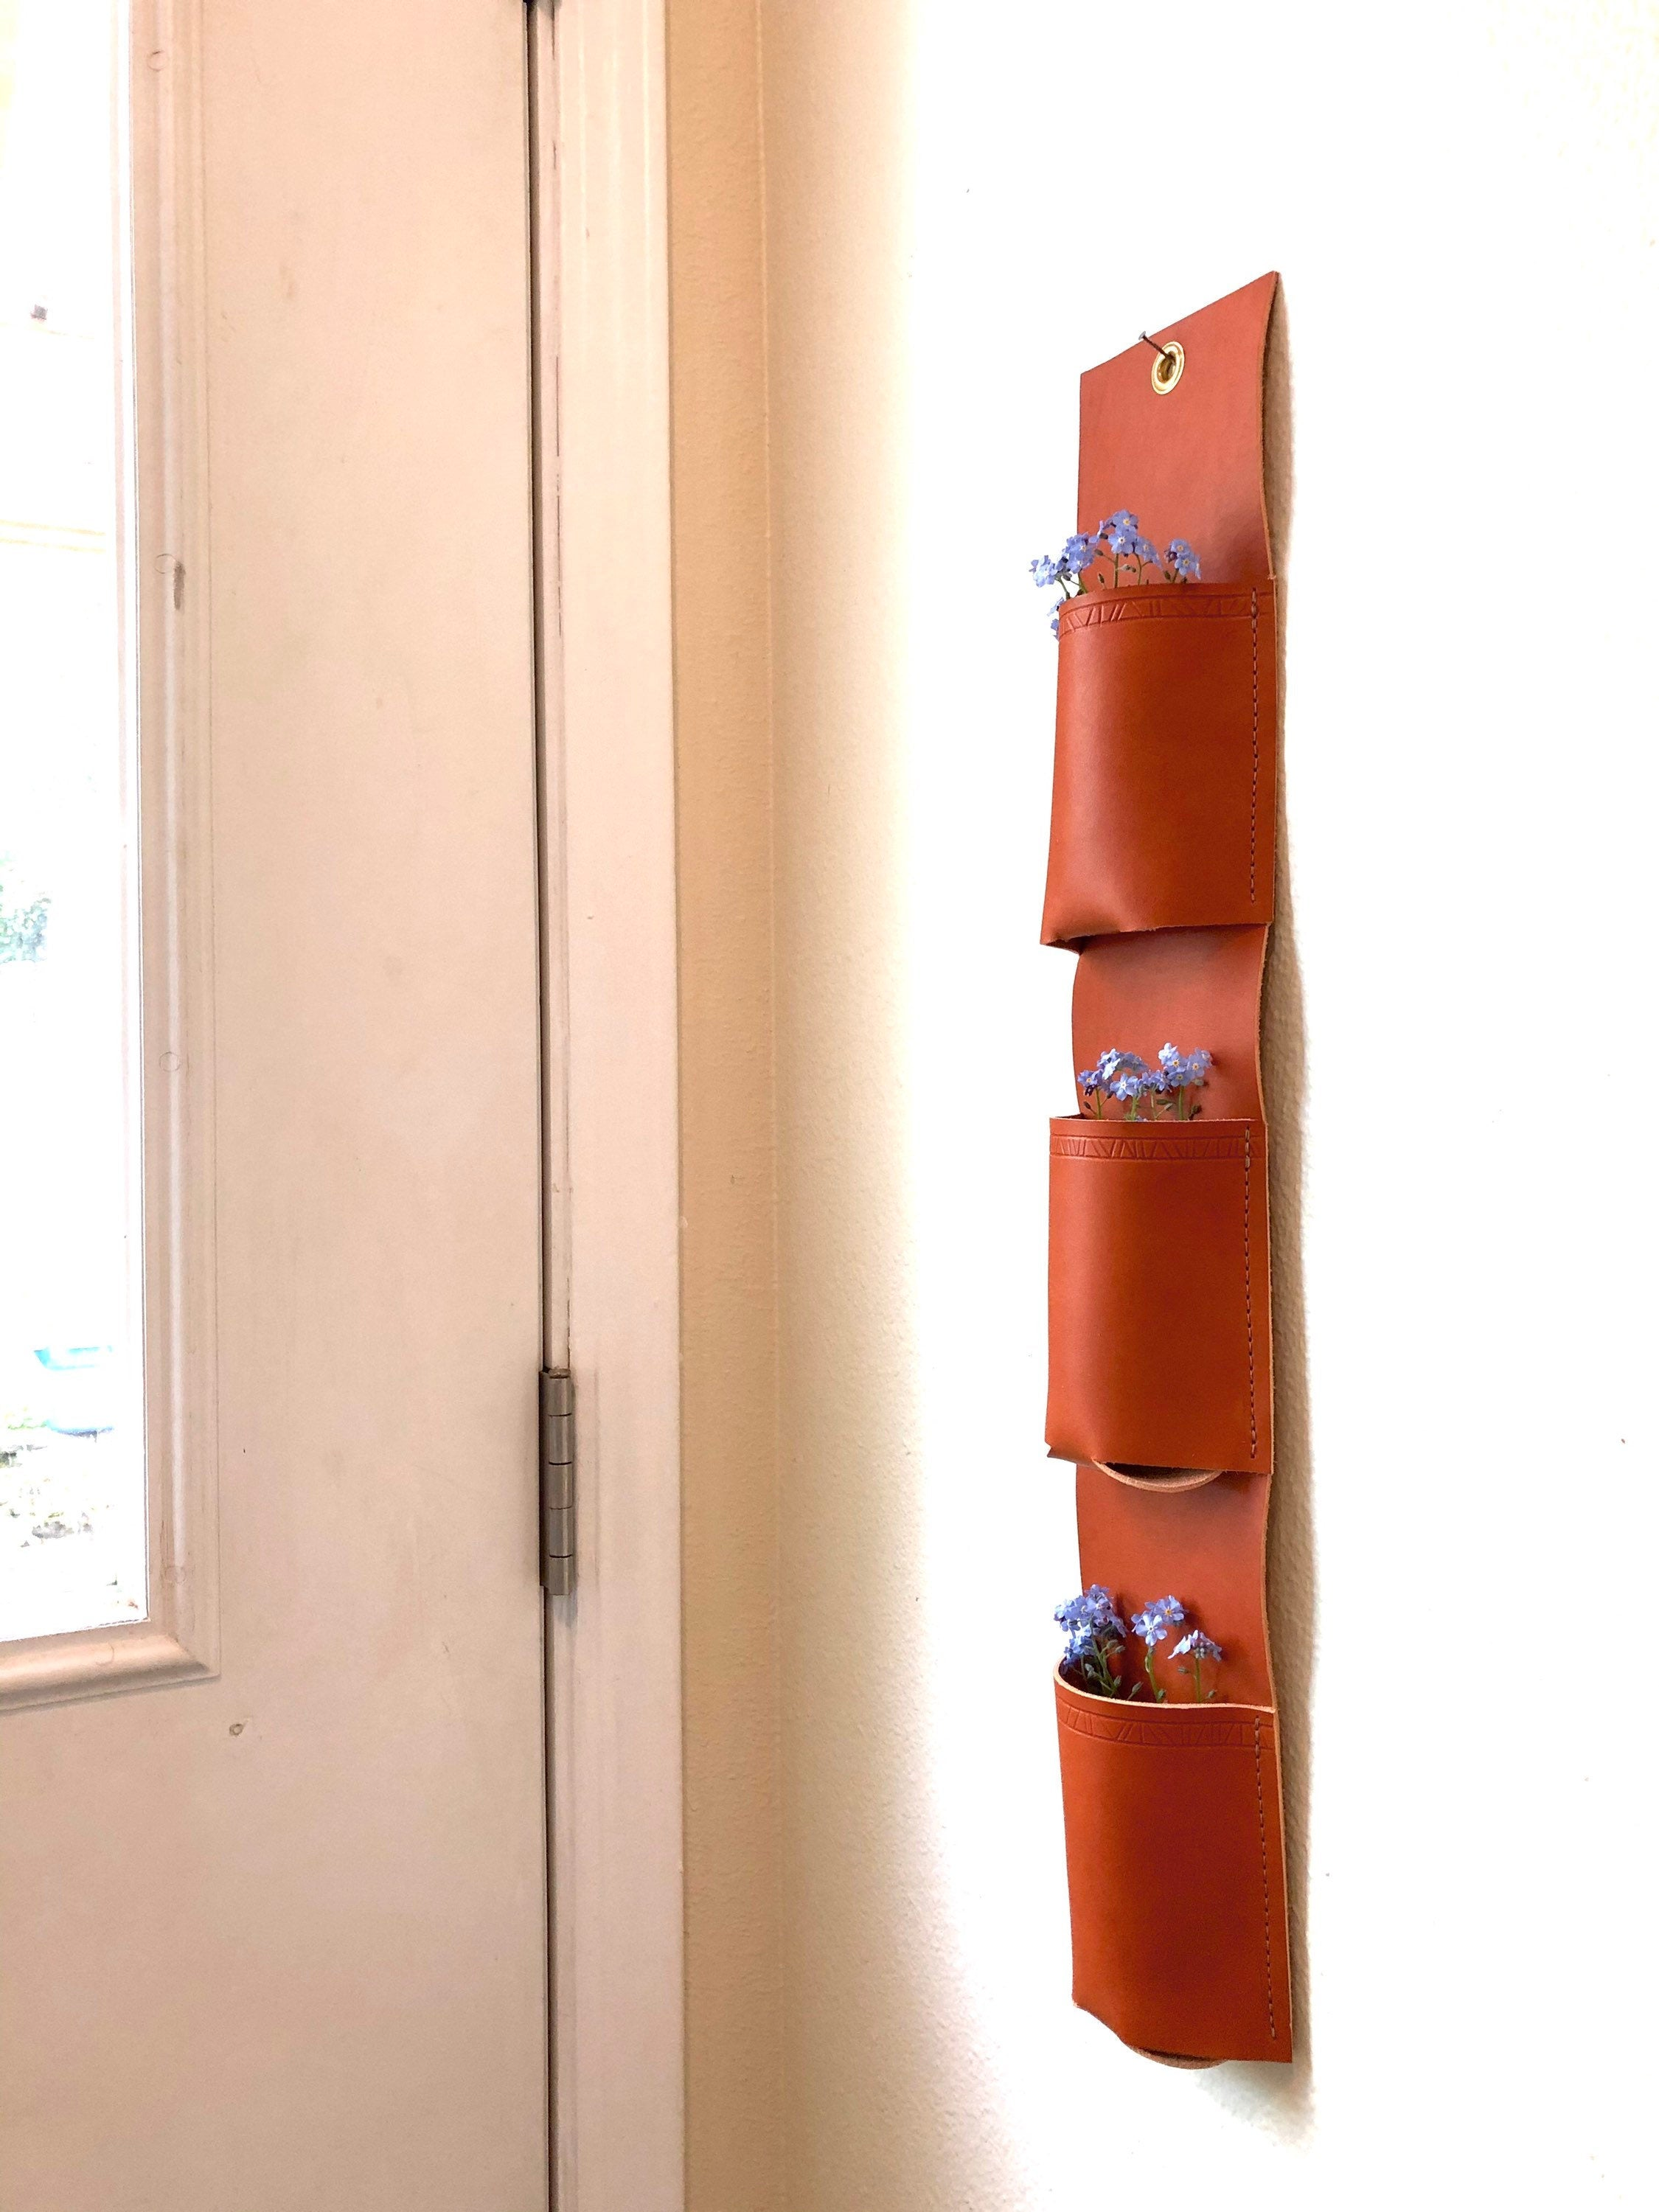 Tan leather vertical organizer with three pockets holds blue forget-me-nots by windowed door